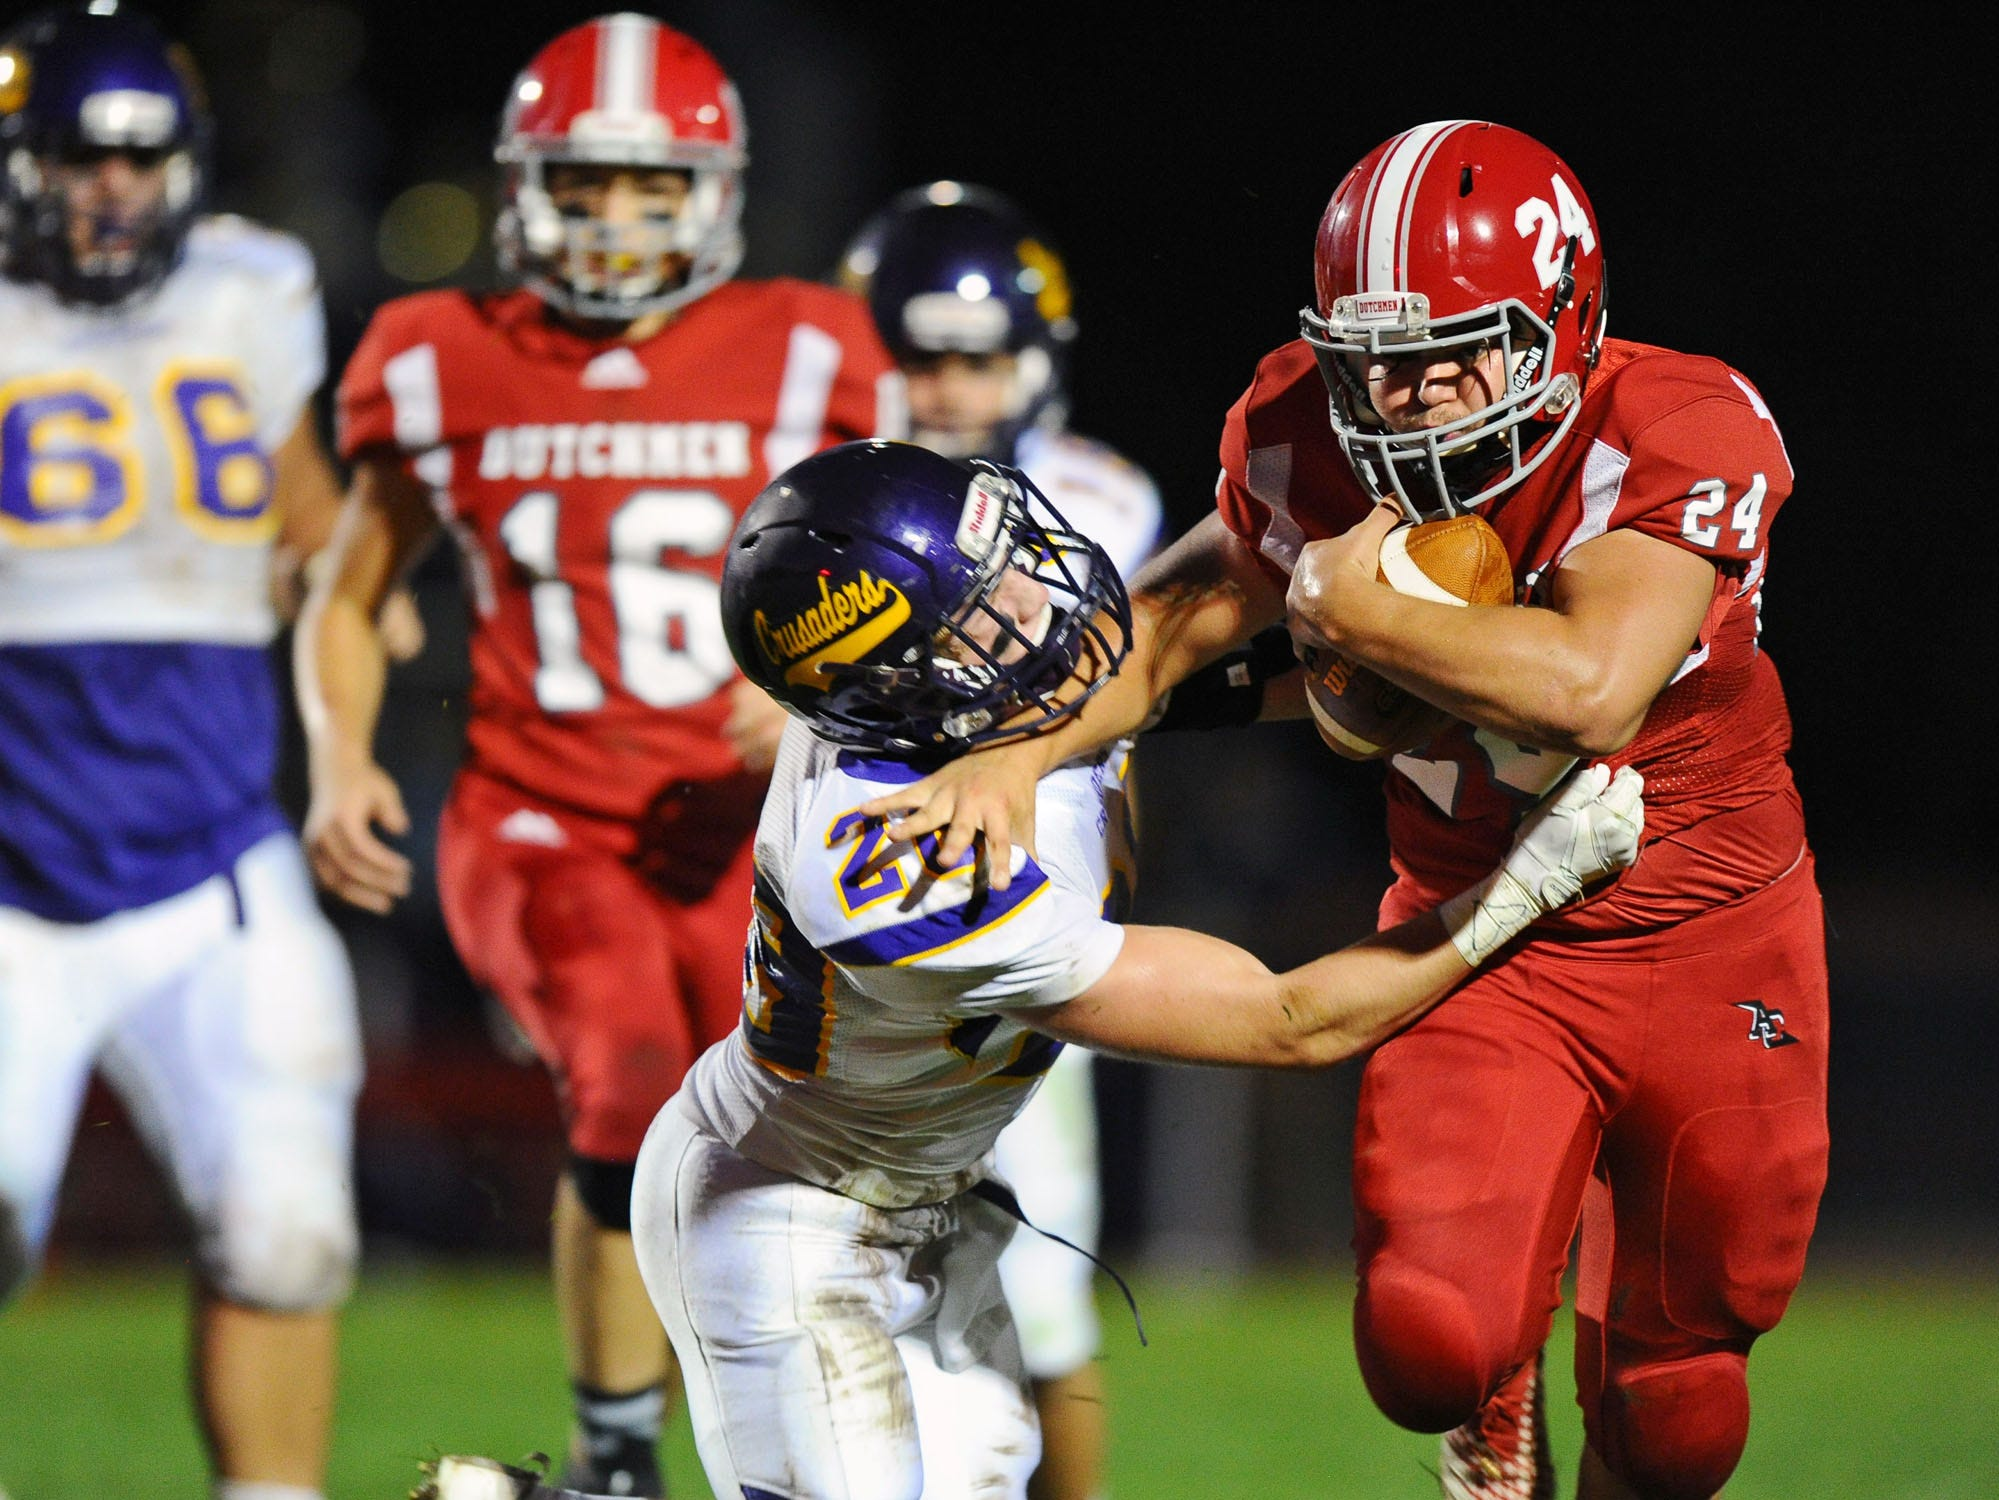 Annville-Cleona RB Caleb Turner (24) tries to get around Luke Miller (28) of Lancaster Catholic during  Friday night's game.